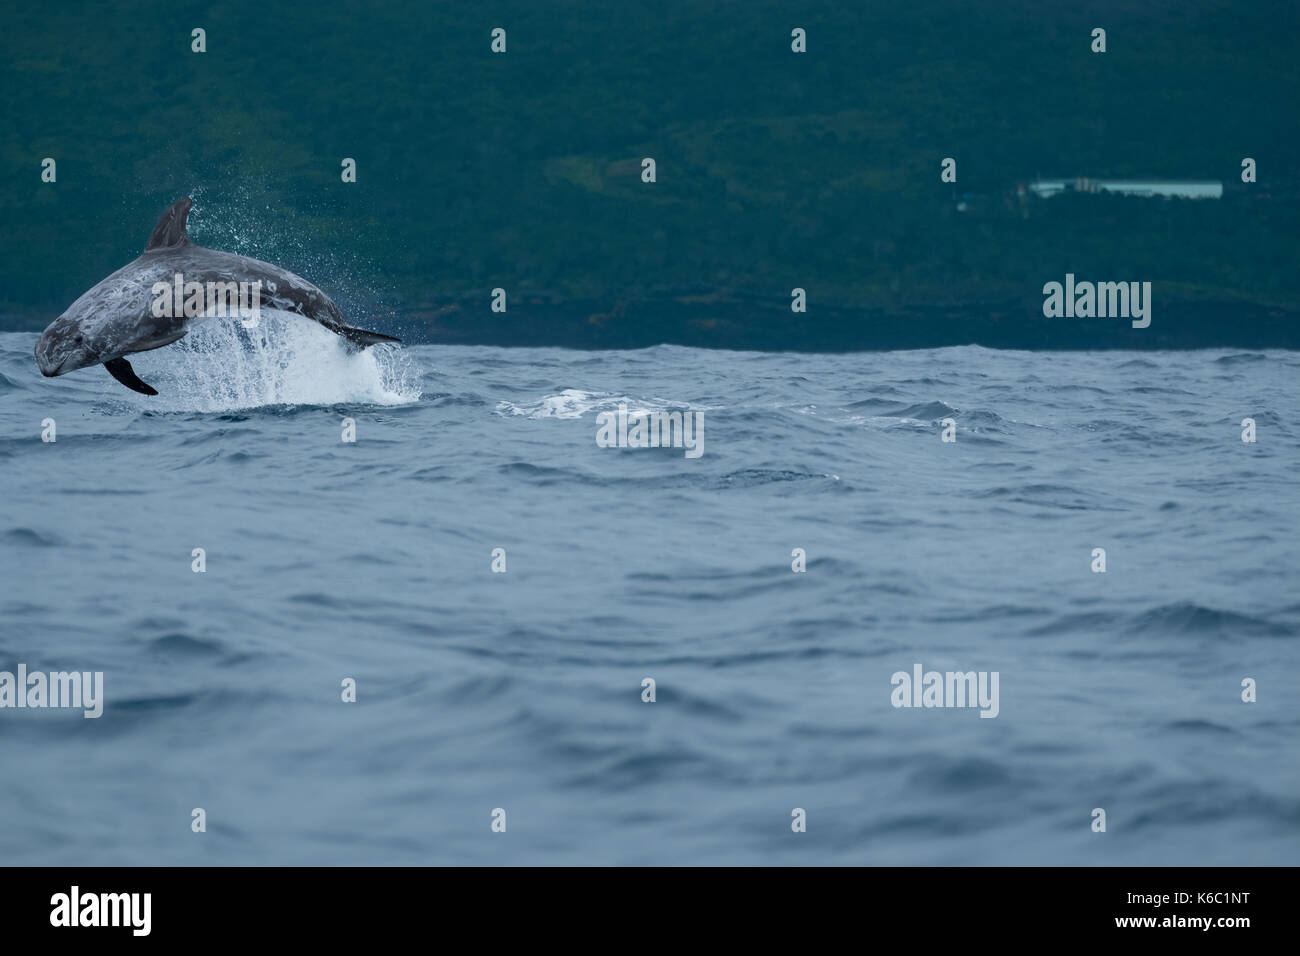 A Risso's dolphin leaping clear of the water near to the A ores; normally placid. This one was chasing other dolphins from its territory. - Stock Image